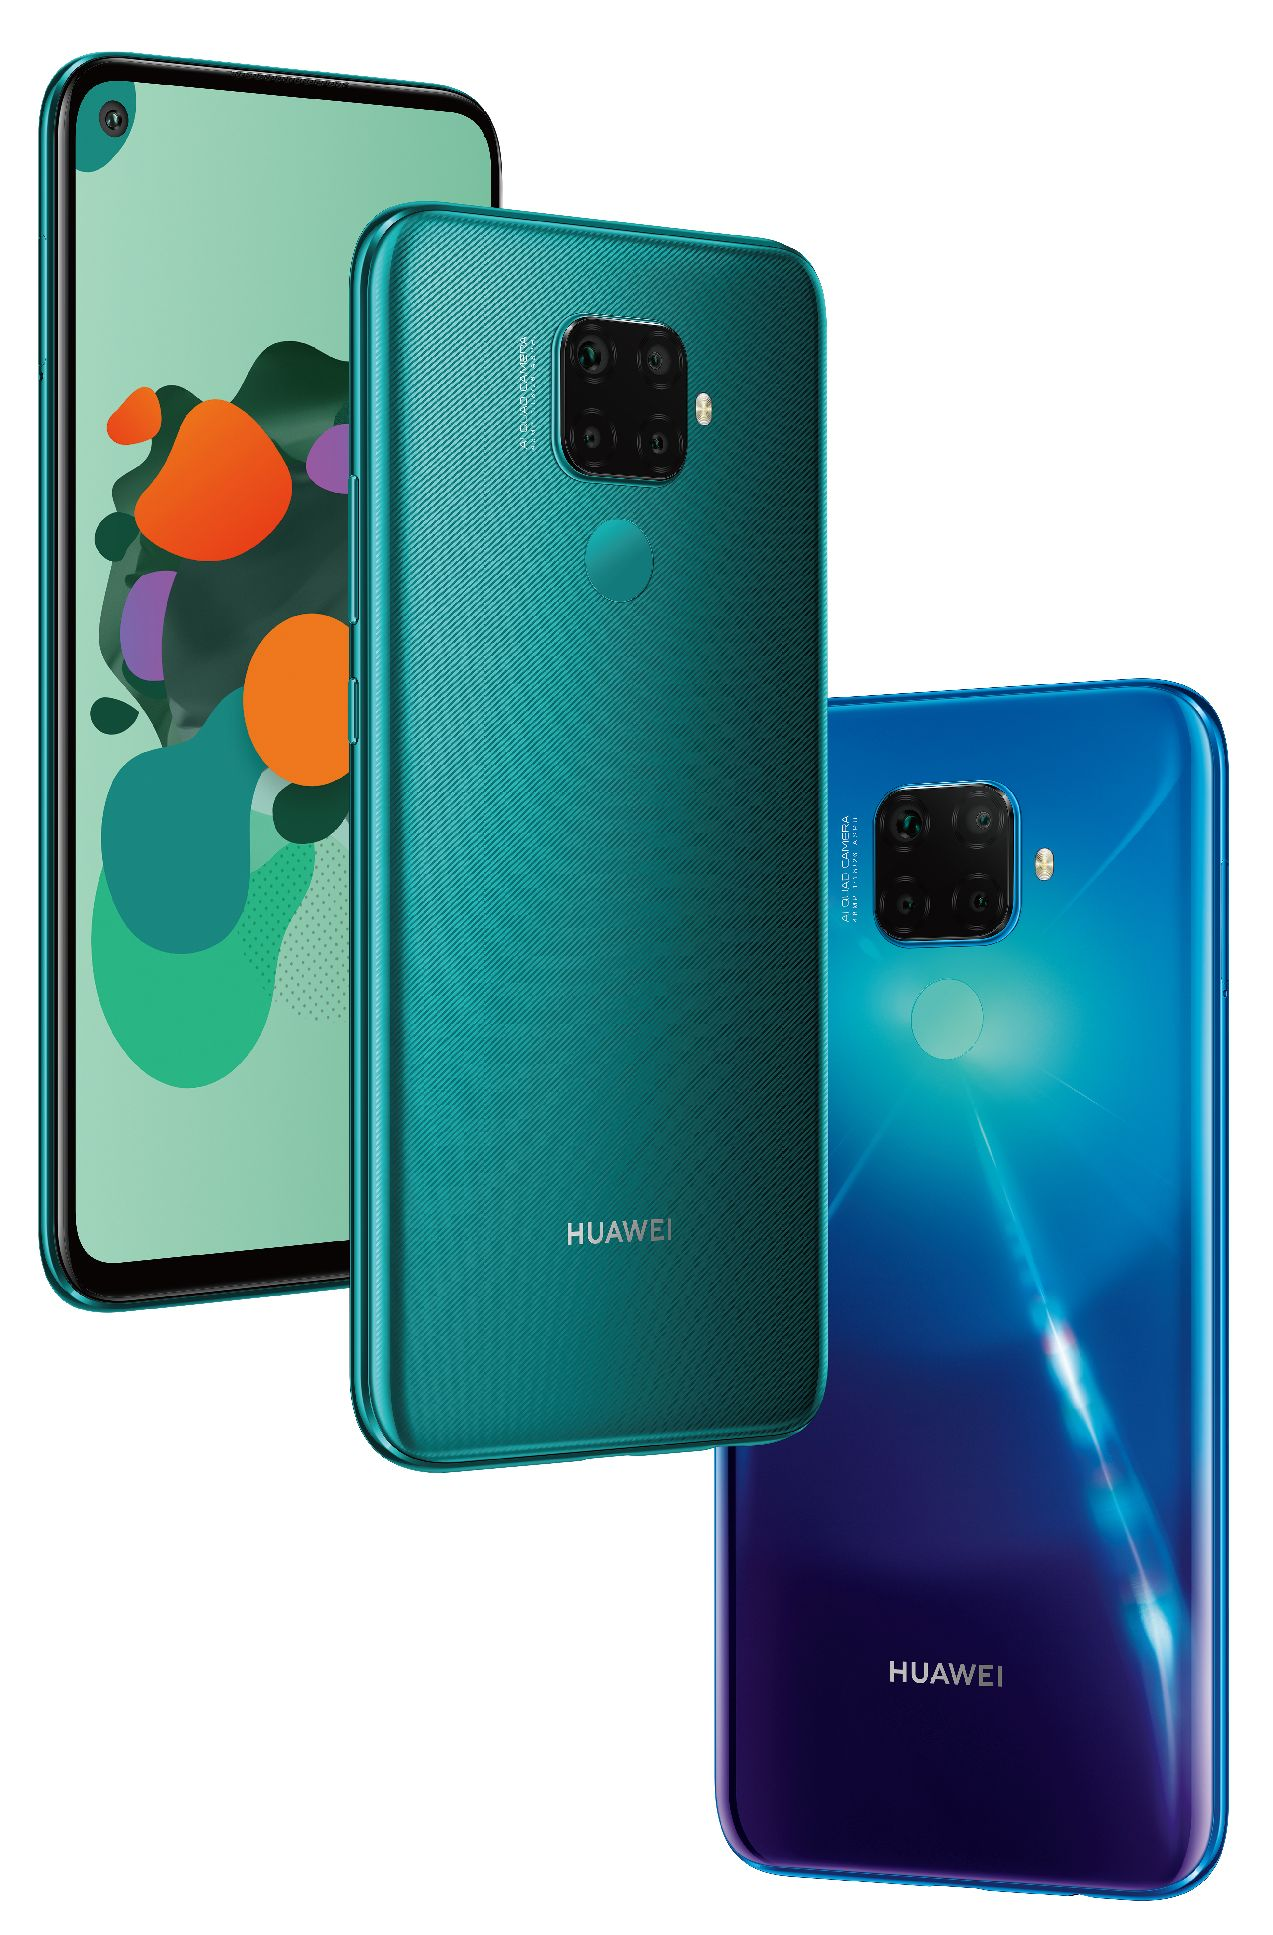 Here are the Huawei Mate 30 & Mate 30 Pro official renders